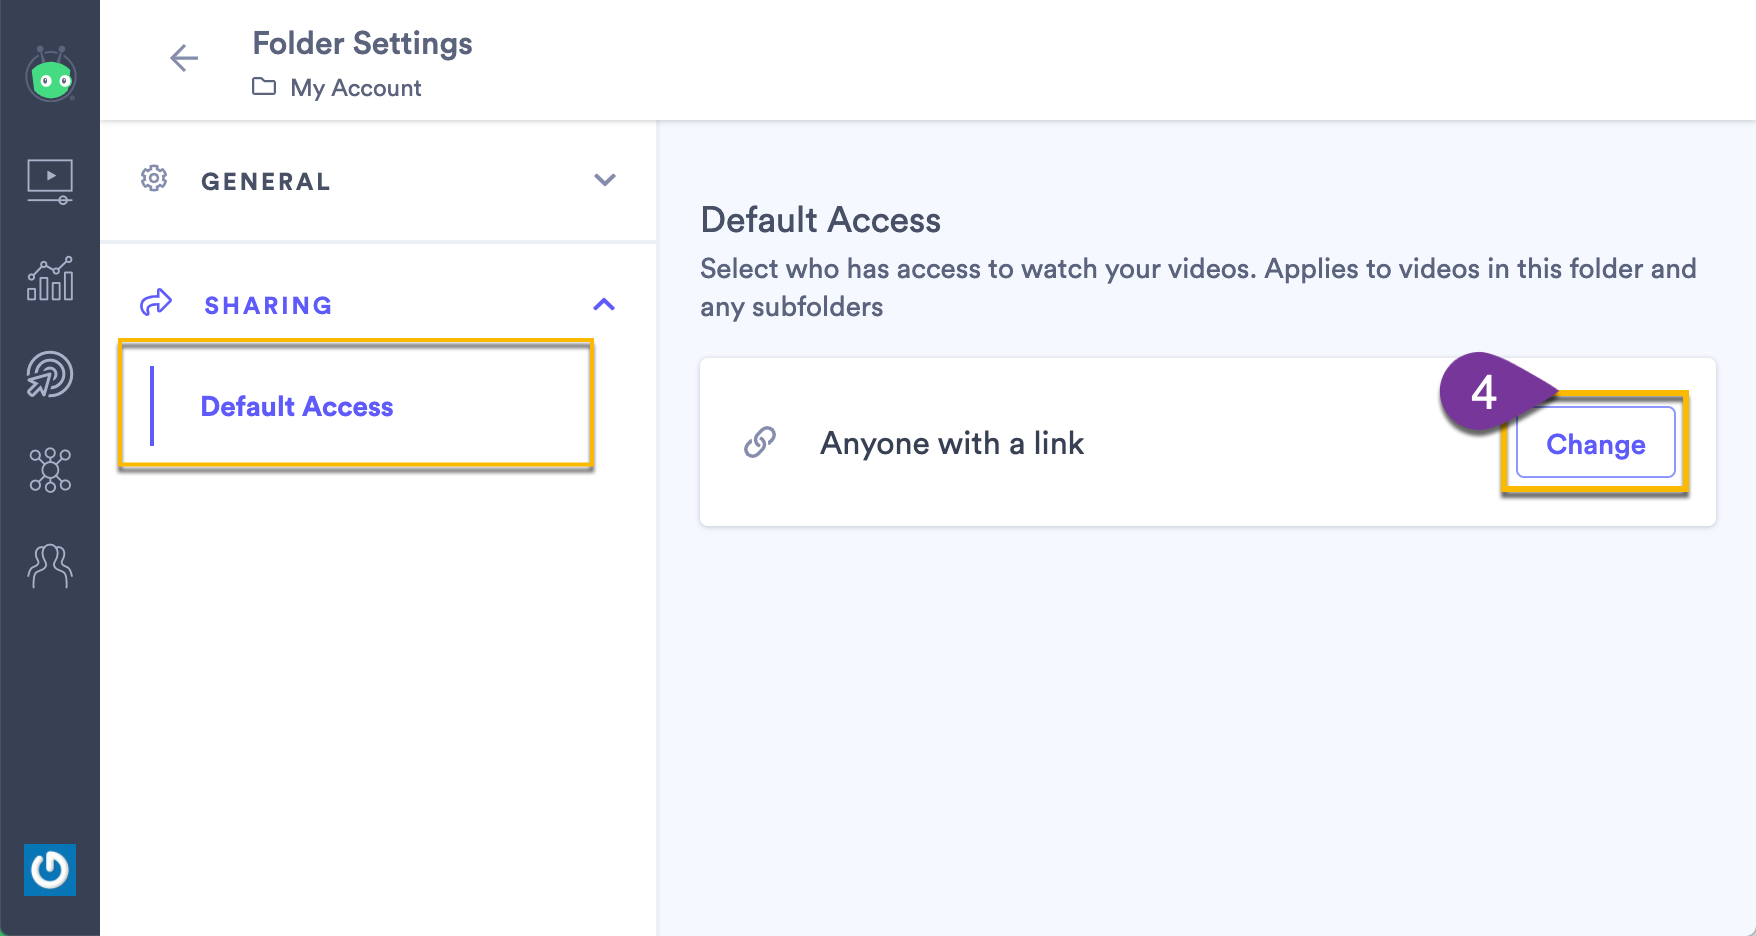 Changing the access settings for the folder